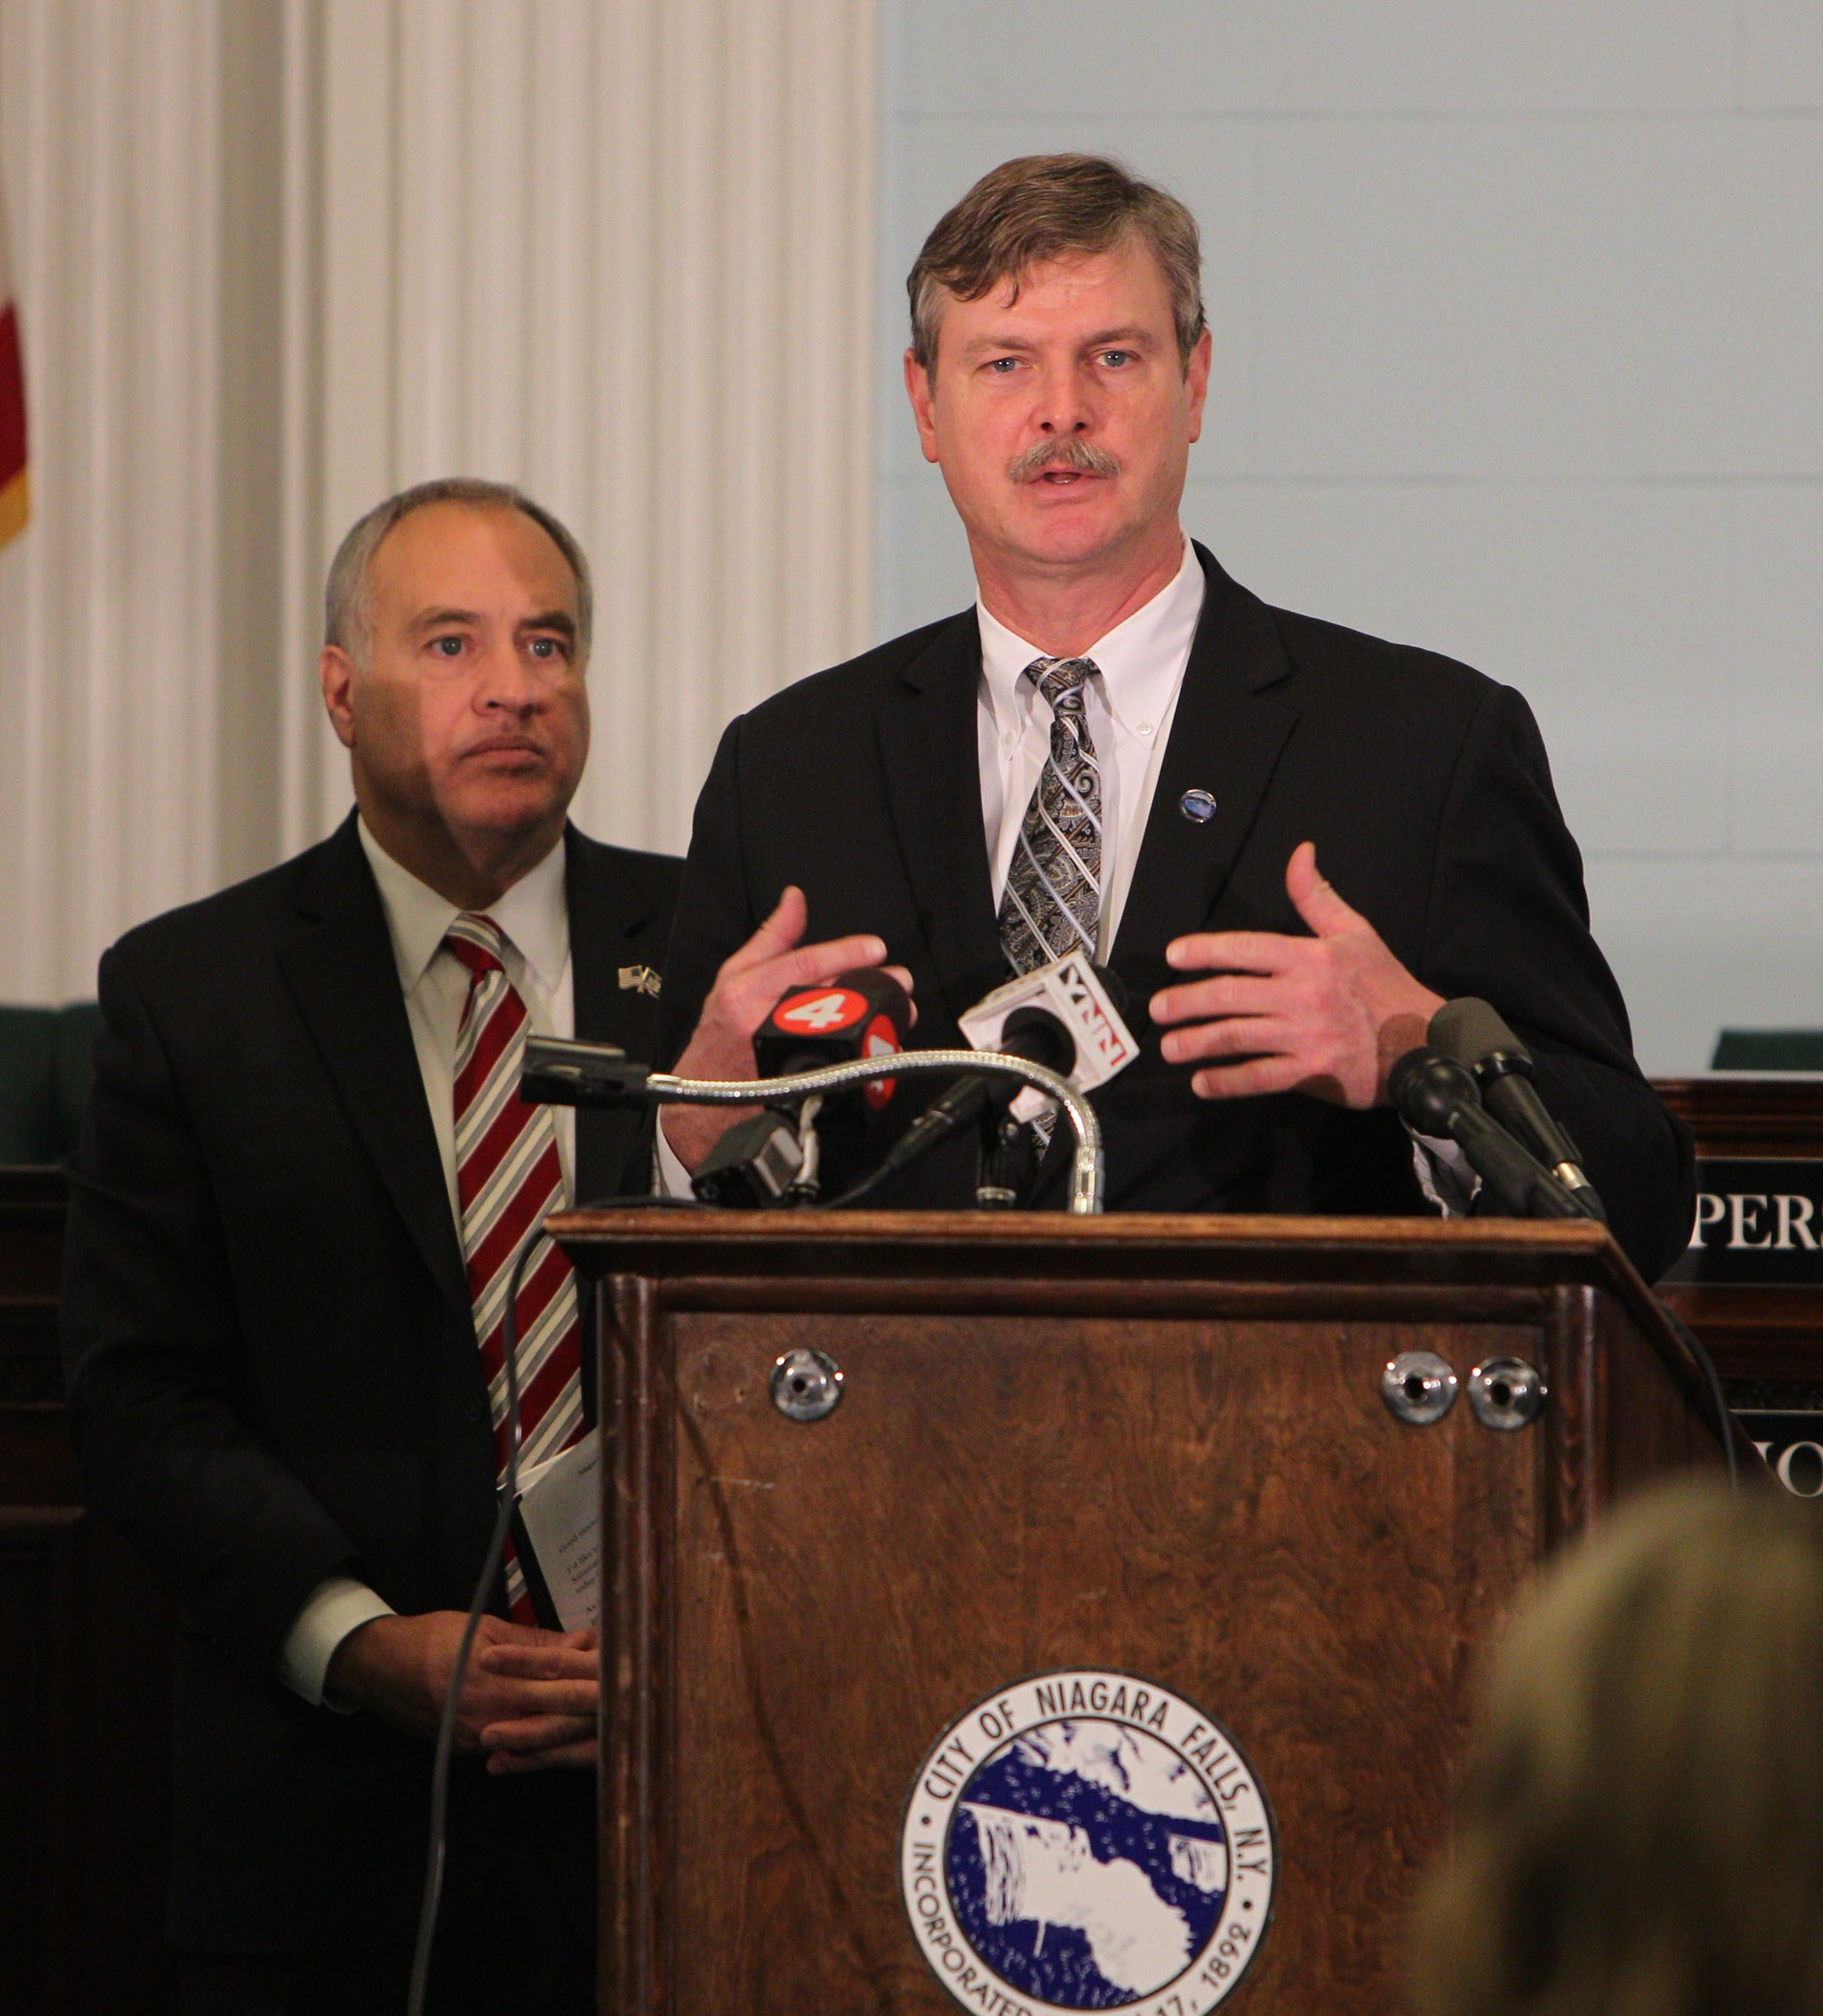 Niagara Falls Mayor Paul A. Dyster speaks at news conference in December 2012 as State Comptroller Thomas Di Napoli looks on.